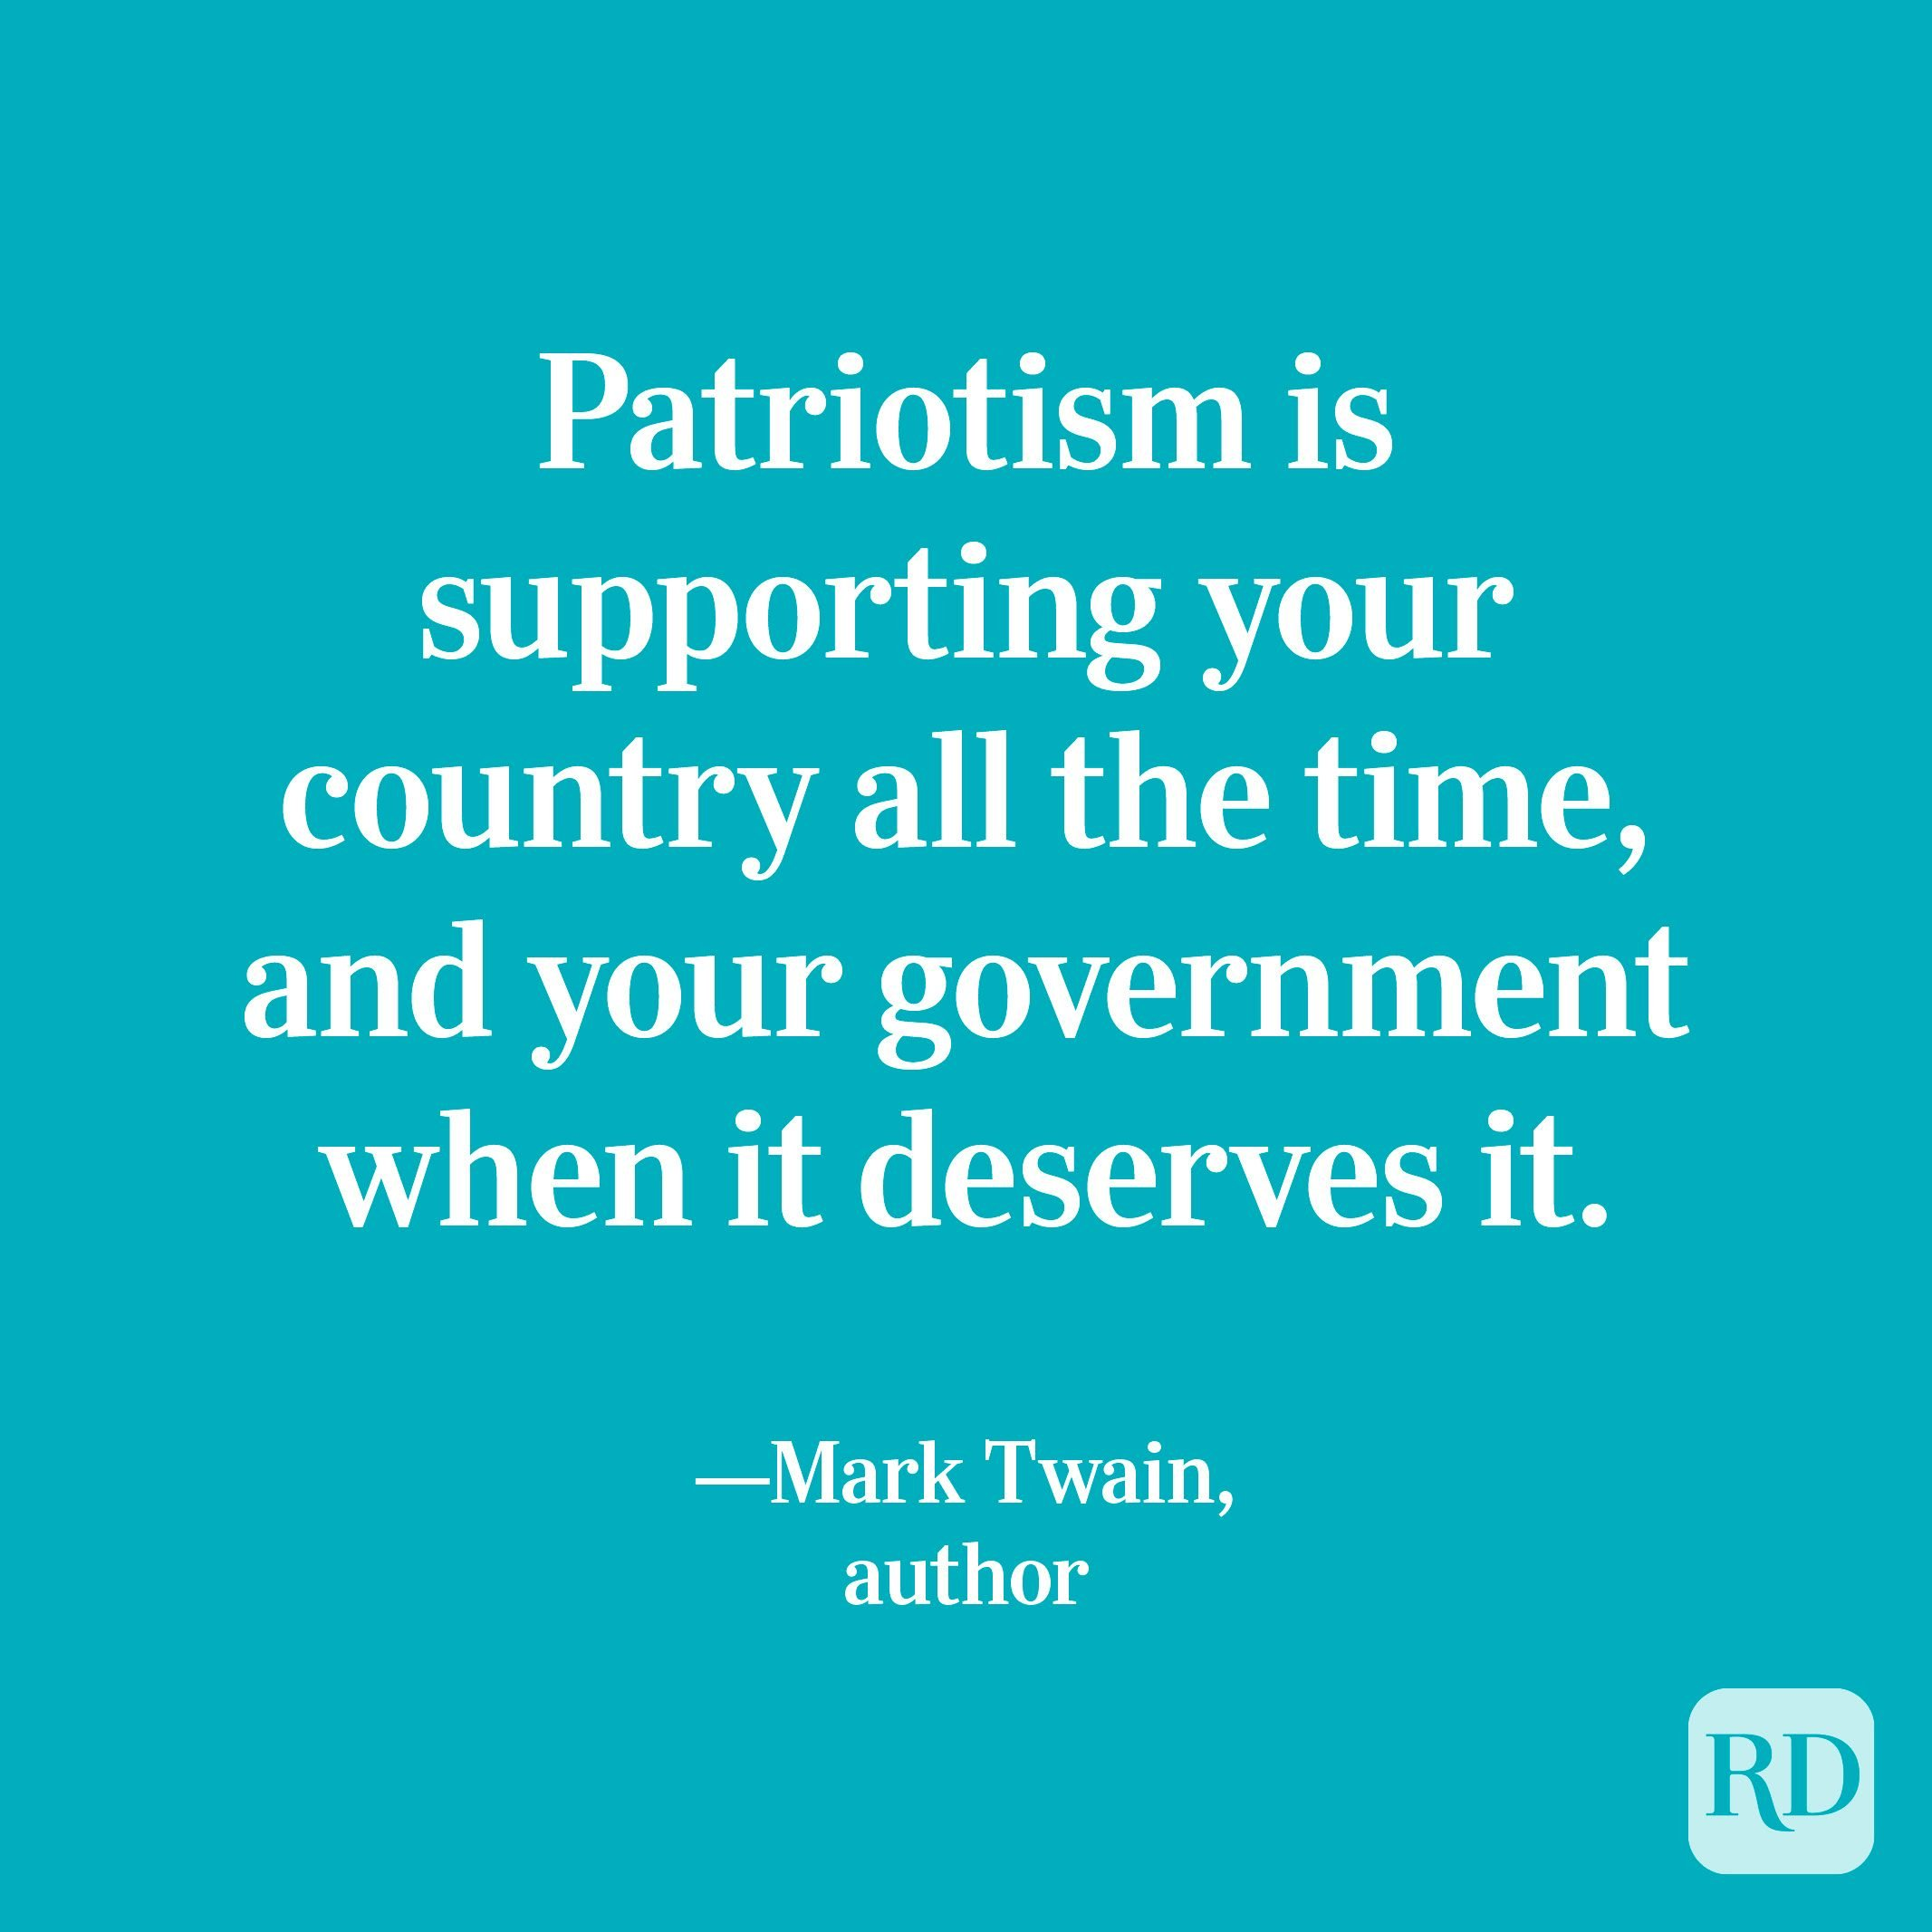 """""""Patriotism is supporting your country all the time, and your government when it deserves it.""""—Mark Twain, author"""